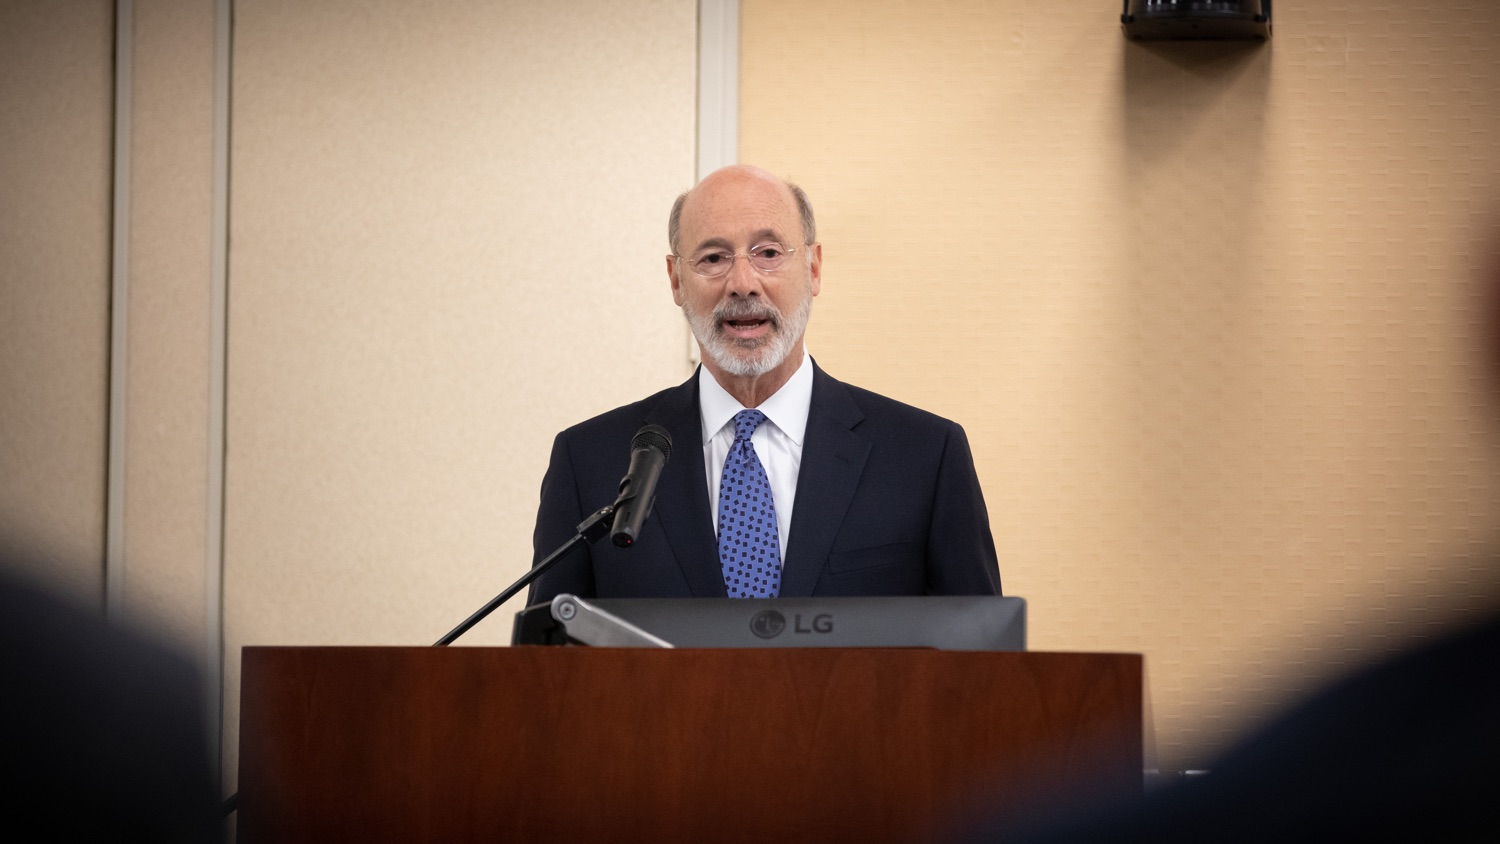 "<a href=""http://filesource.abacast.com/commonwealthofpa/photo/17598_gov_charter_schools_dz_009.jpg"" target=""_blank"">⇣ Download Photo<br></a>Pennsylvania Governor Tom Wolf speaks about charter school reform at a meeting of the Pennsylvania Association of School Administrators.  Governor Tom Wolfs commonsense plan to improve the educational quality of charter schools and control rising costs will save nearly $280 million a year, the governor told the Pennsylvania Association of School Administrators today. The governor has a three-part plan to fix Pennsylvanias charter school law which is regarded as one of the worst in the nation.  - Harrisburg, PA. Friday, November 15, 2019."